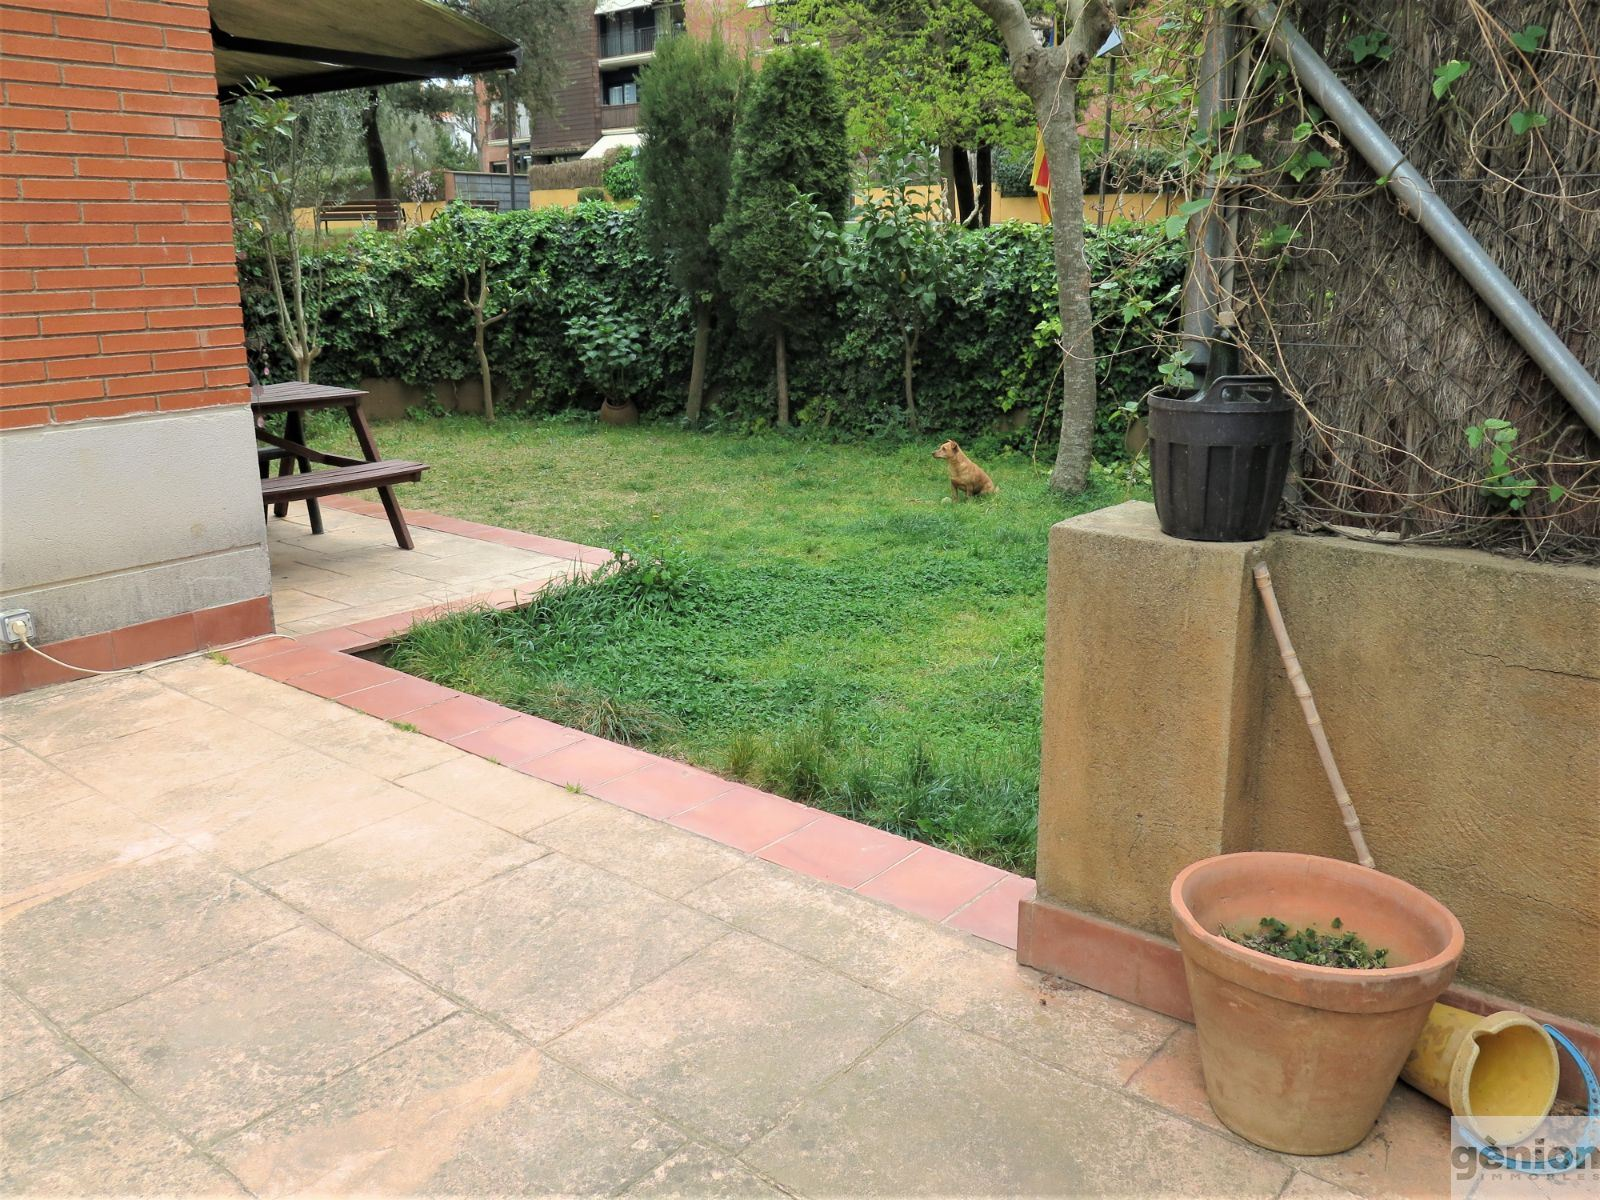 GROUND-FLOOR APARTMENT IN GIRONA'S MONTJUÏC DISTRICT. PRIVATE GARDEN AND COMMUNITY AREA WITH SWIMMING POOL